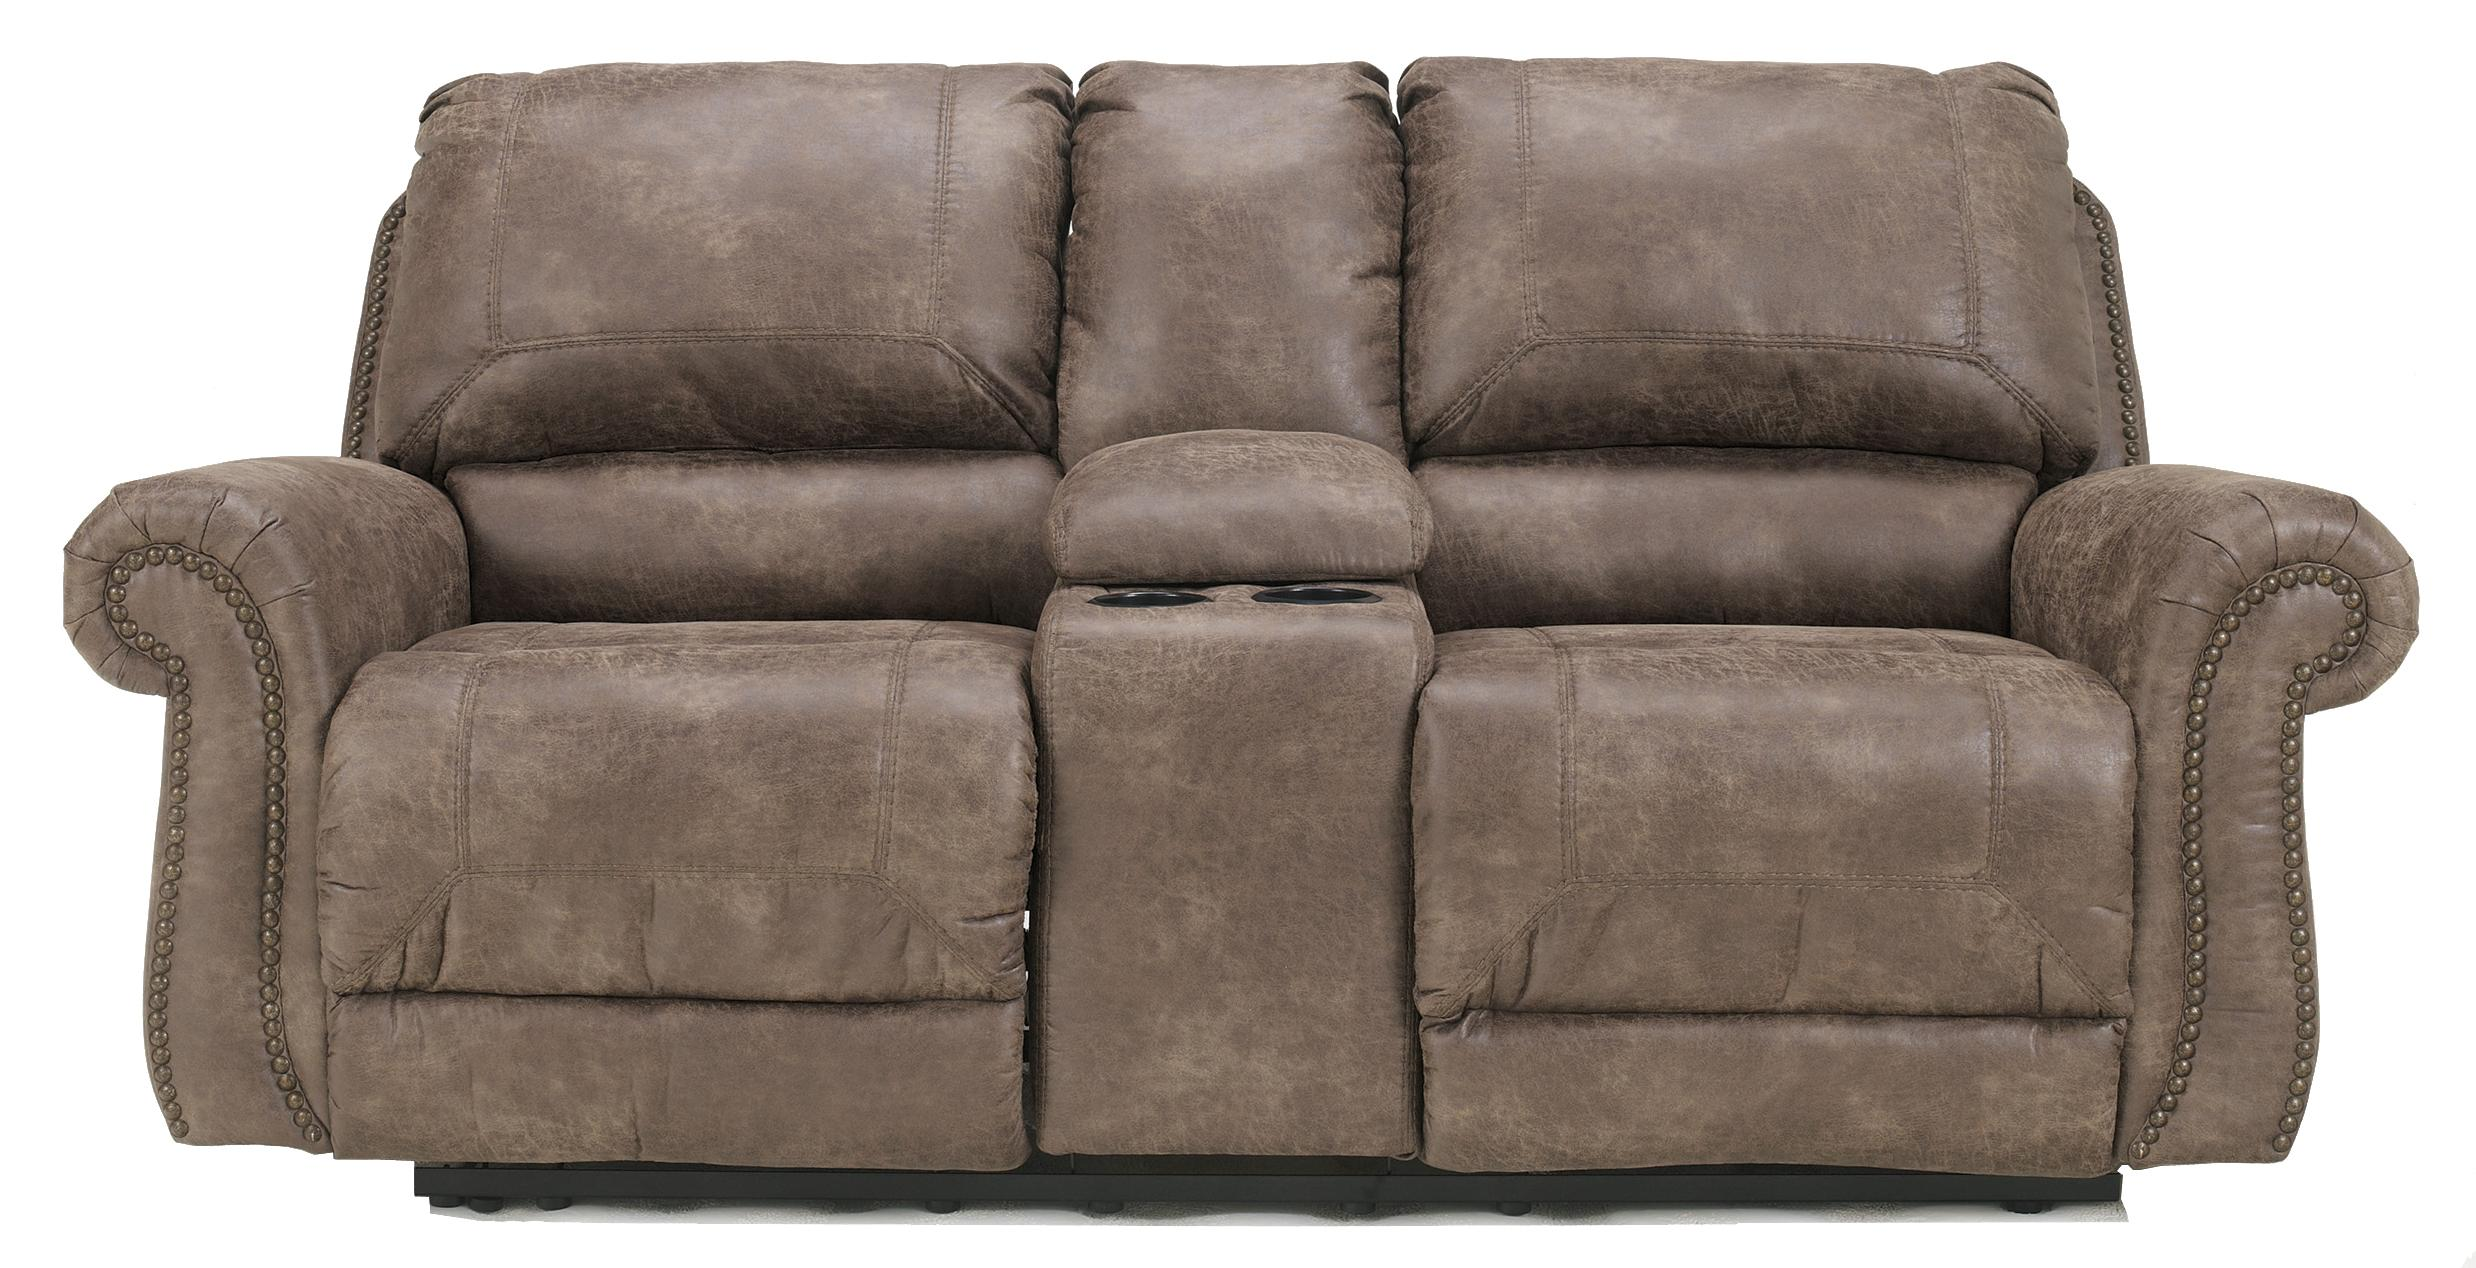 Signature Design by Ashley Oberson - Gunsmoke Double Reclining Loveseat w/ Console - Item Number: 7410094